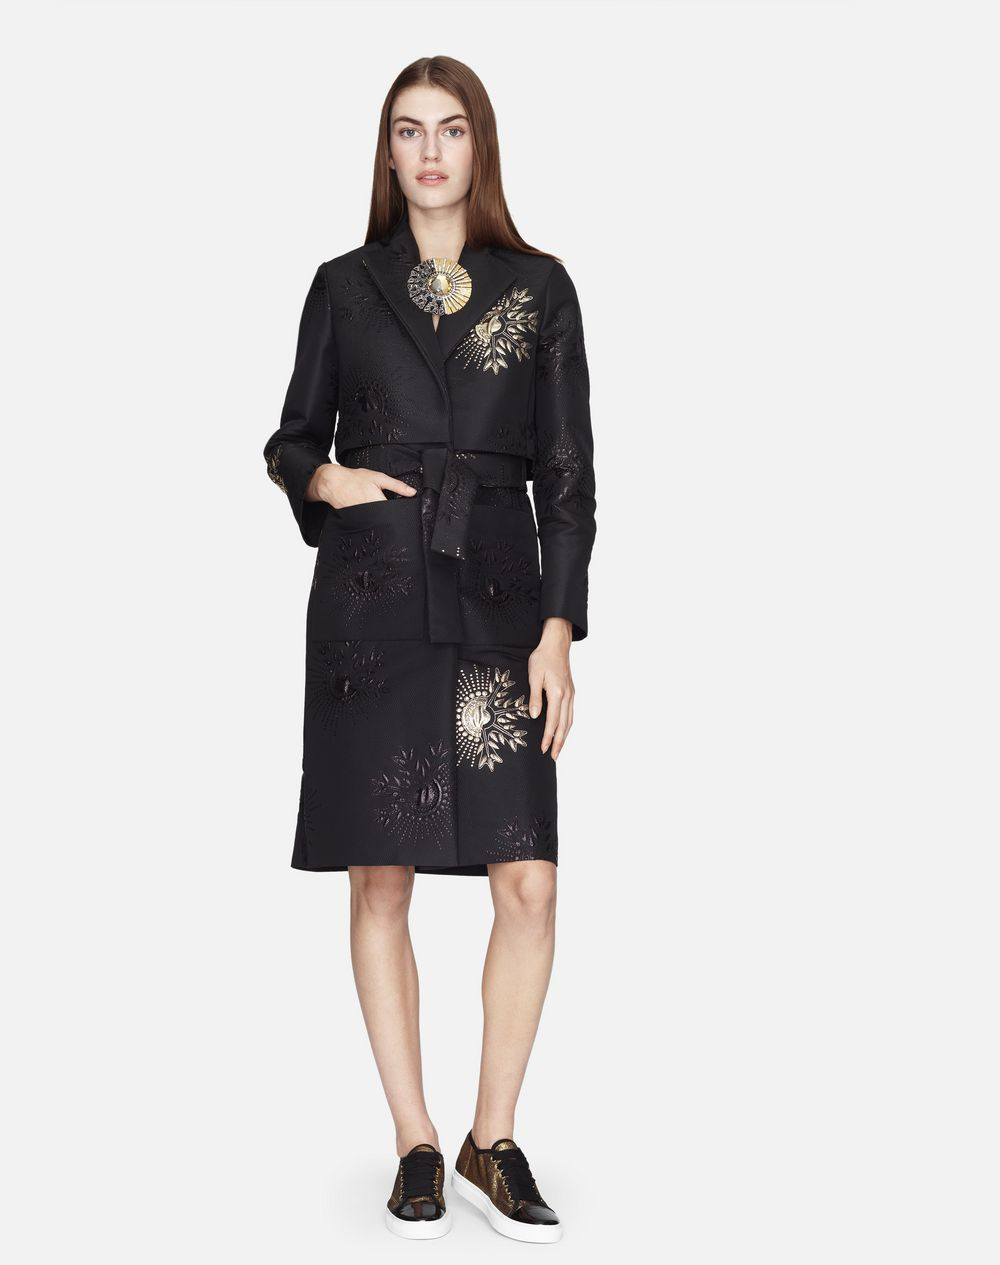 EMBROIDERED JACQUARD TRENCH COAT - Lanvin